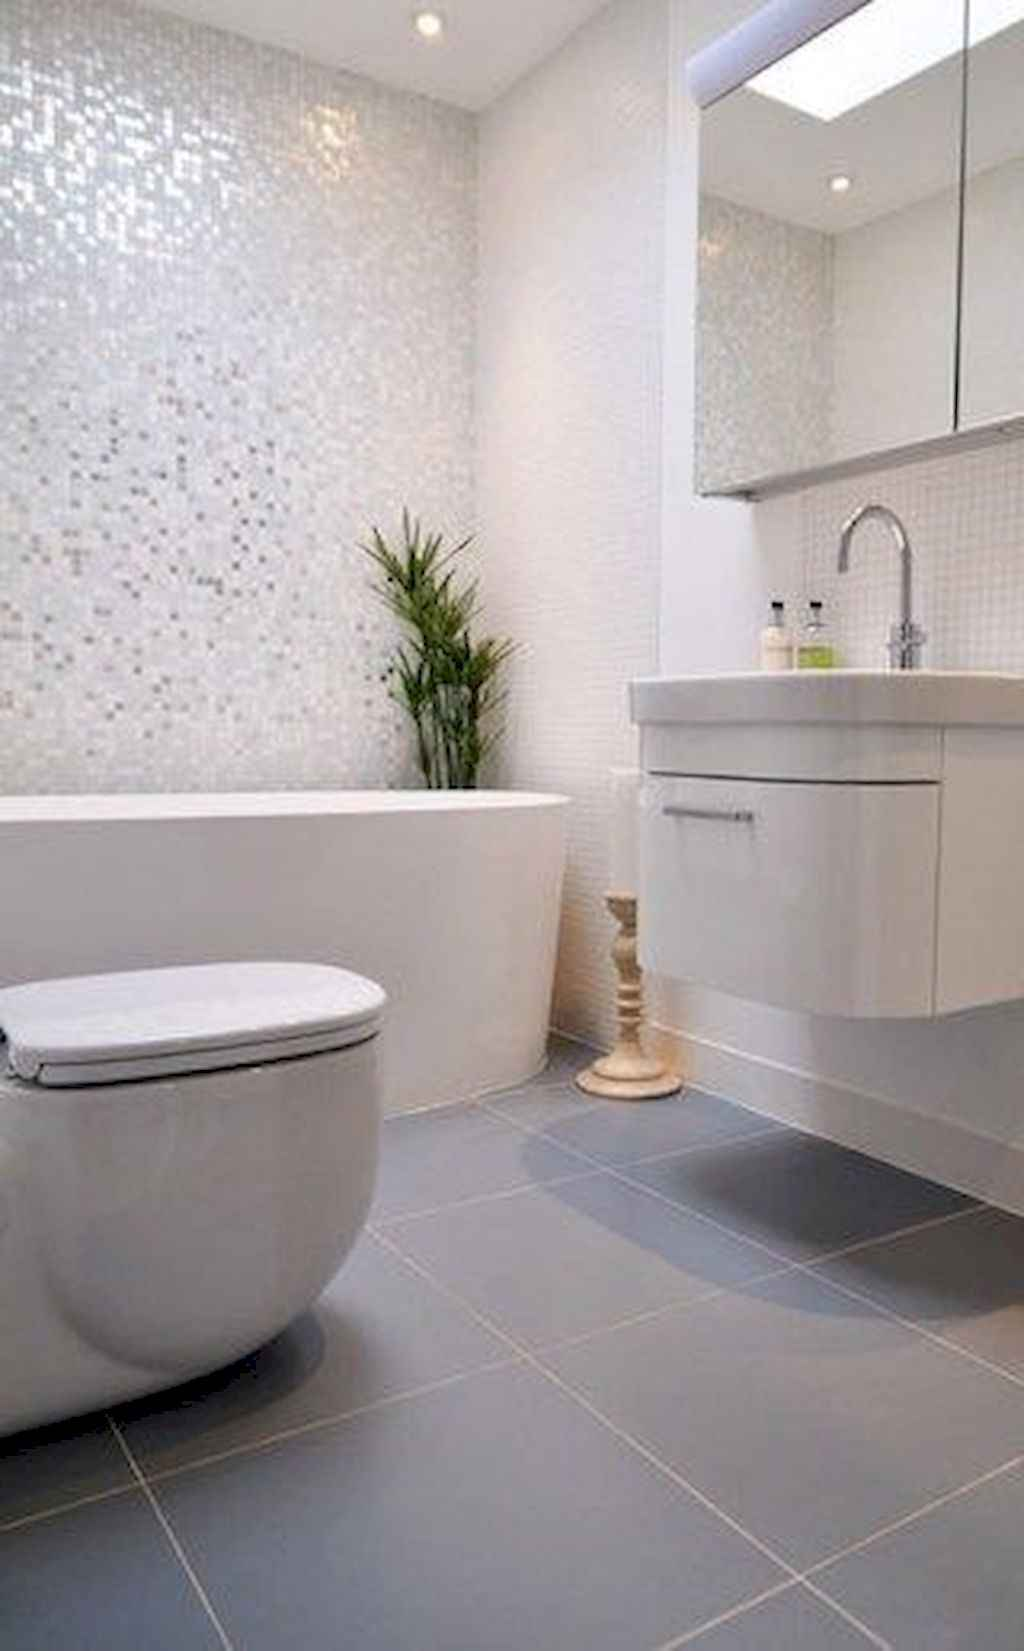 111 awesome small bathroom remodel ideas on a budget (68)